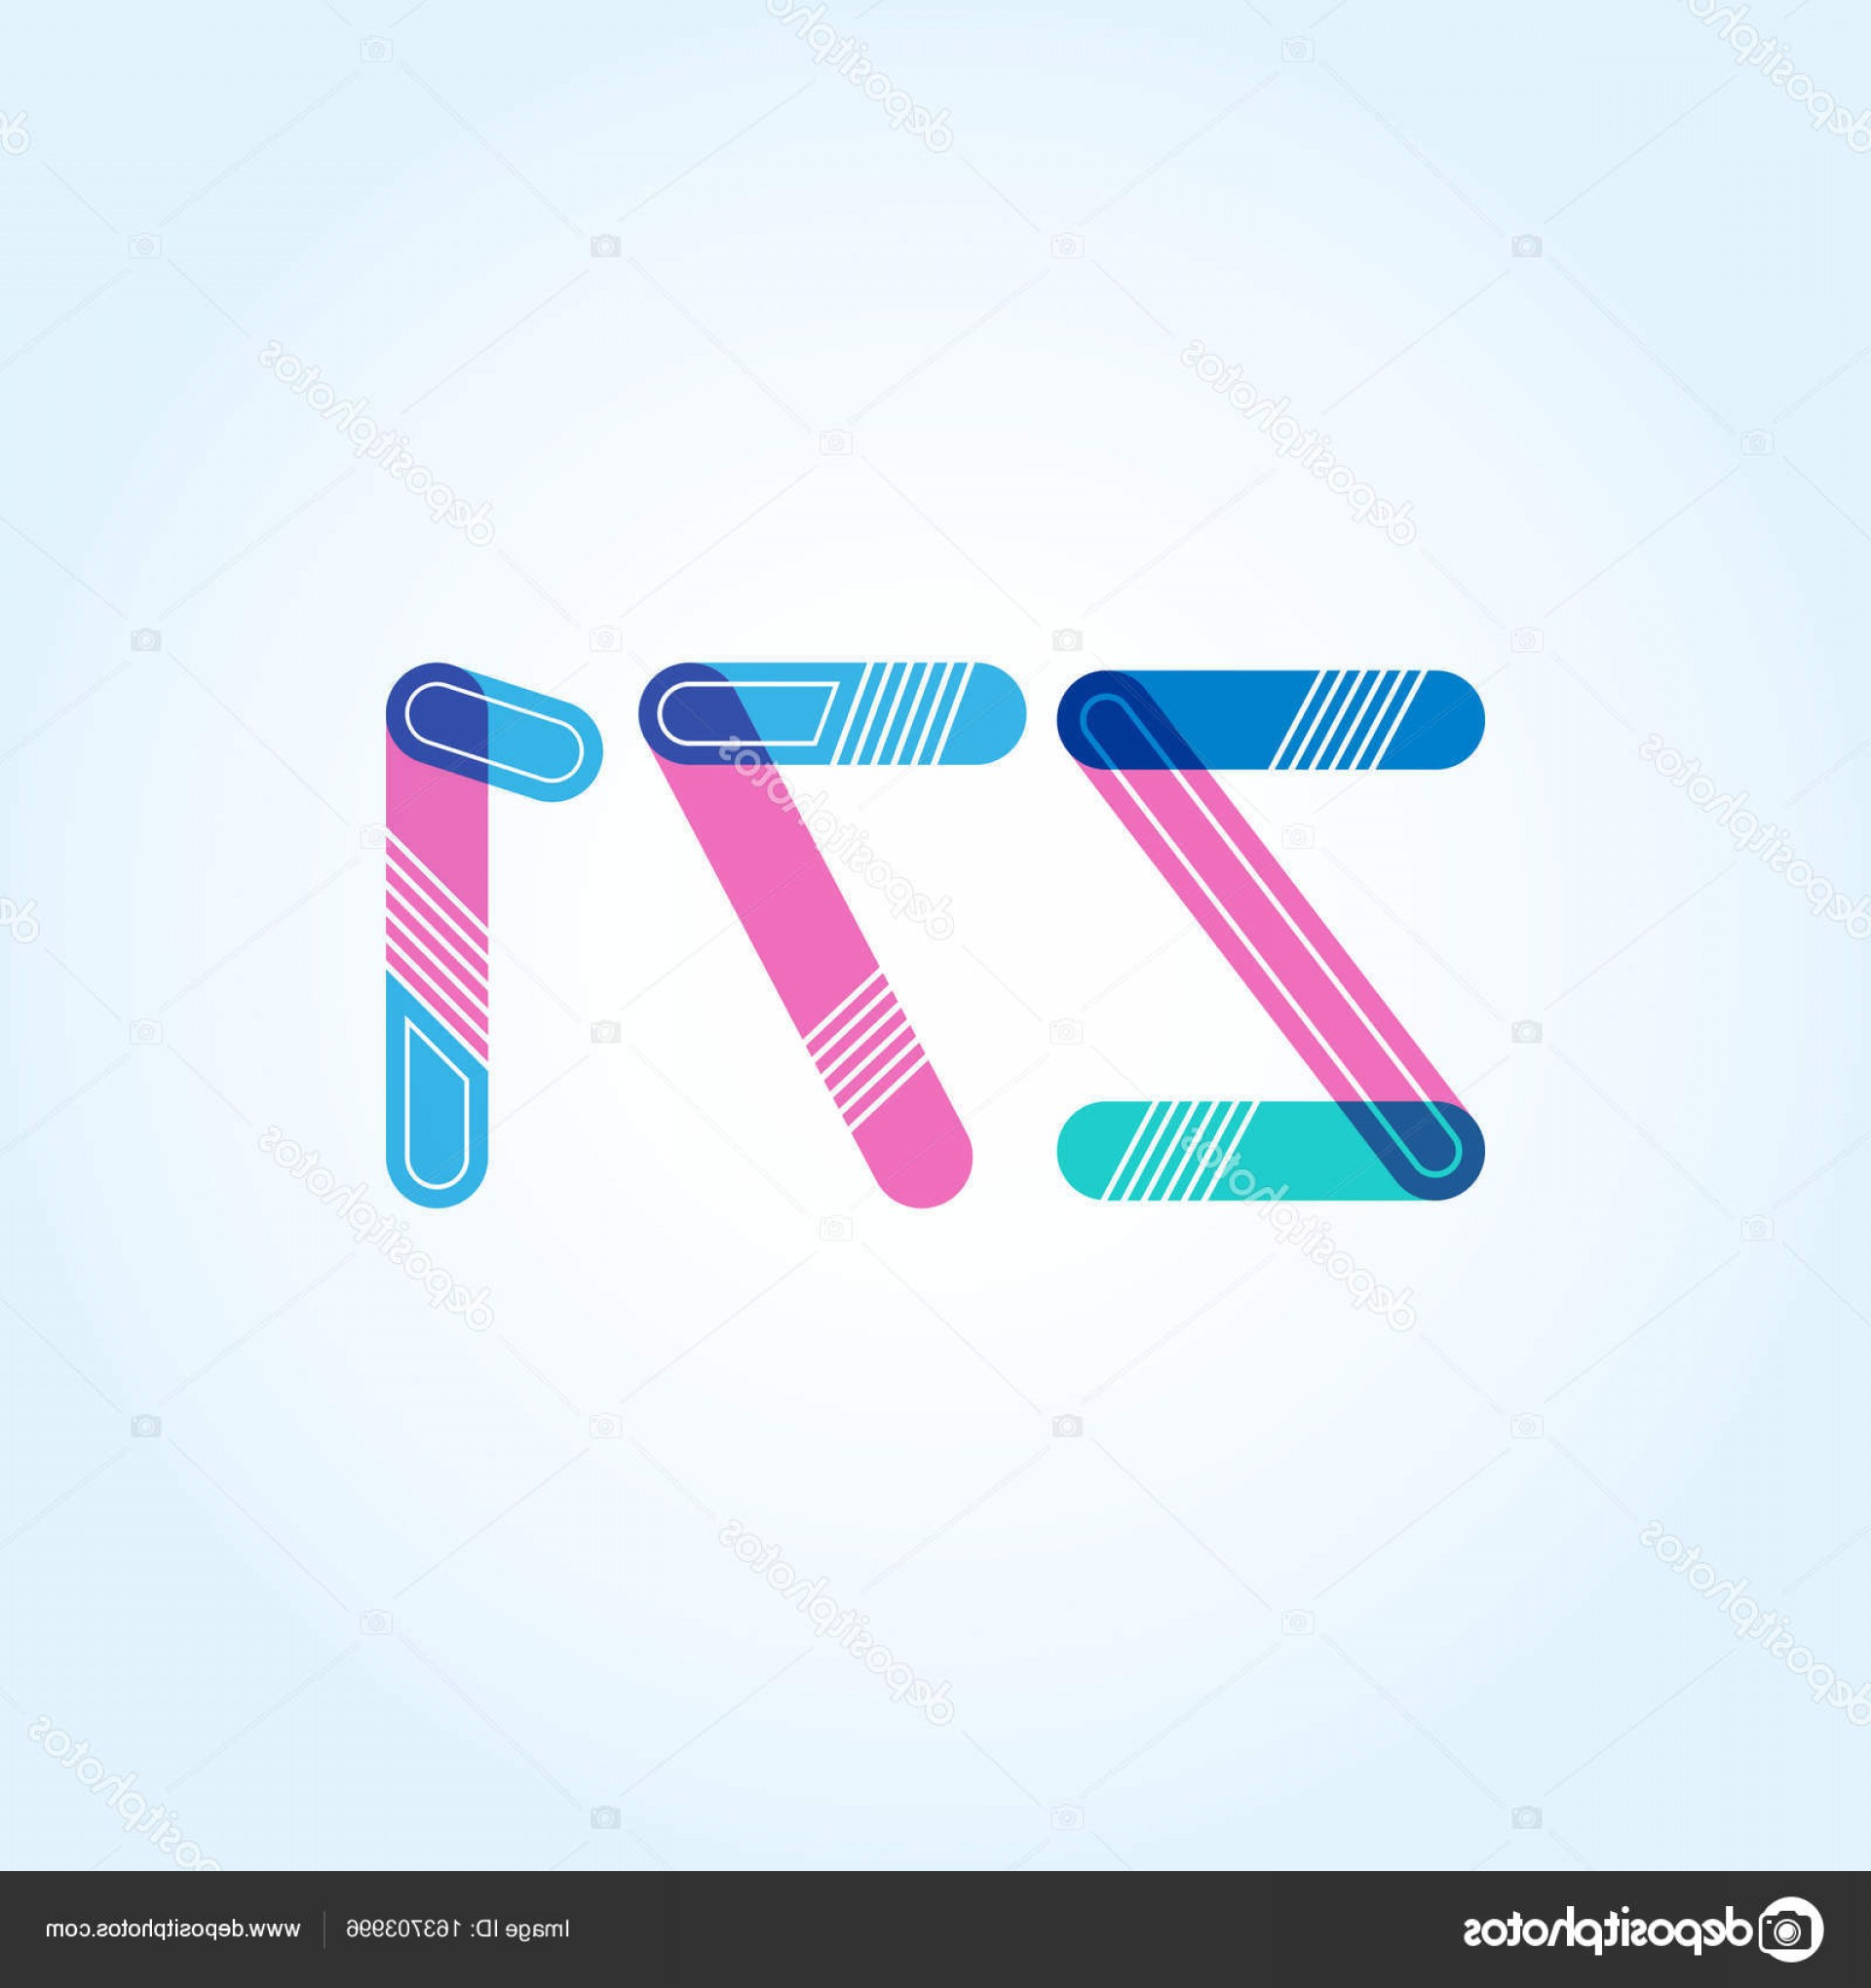 Z71 Logo Vector: Stock Illustration Letter And Digit Company Logo